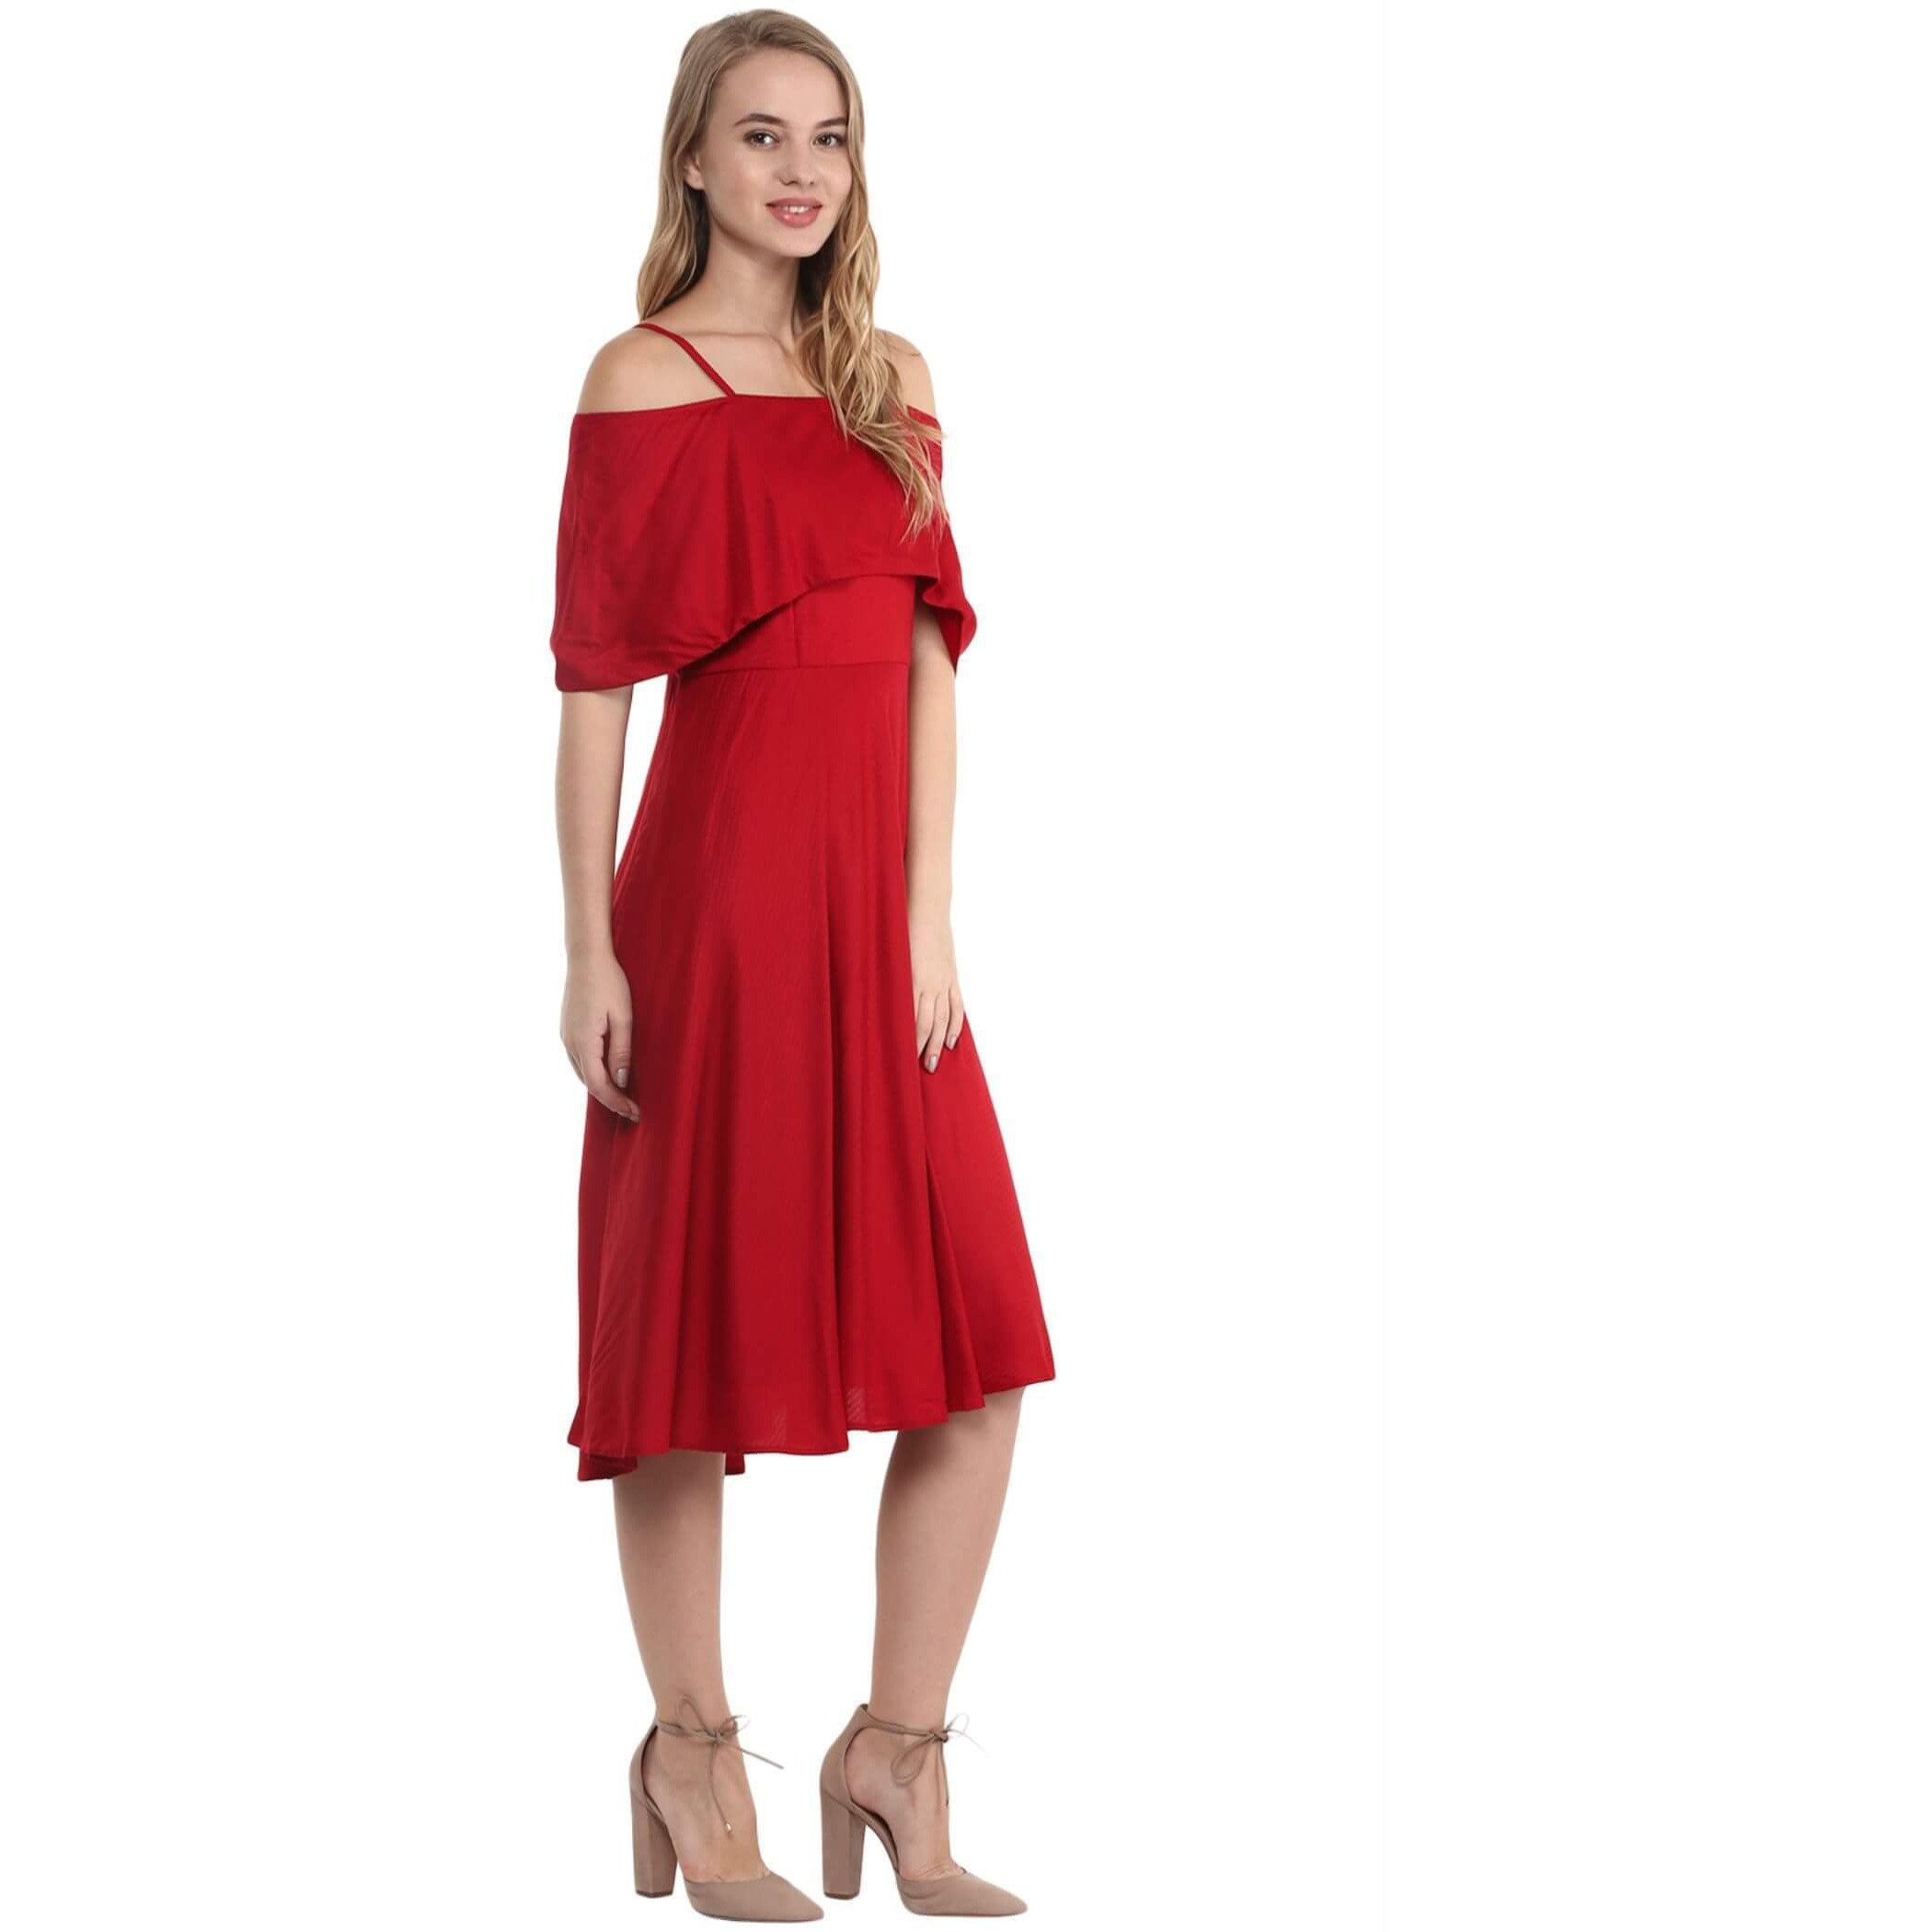 The Vanca Red Cold Shoulder Midi Dress With Shoulder Wrap (Size:XL)